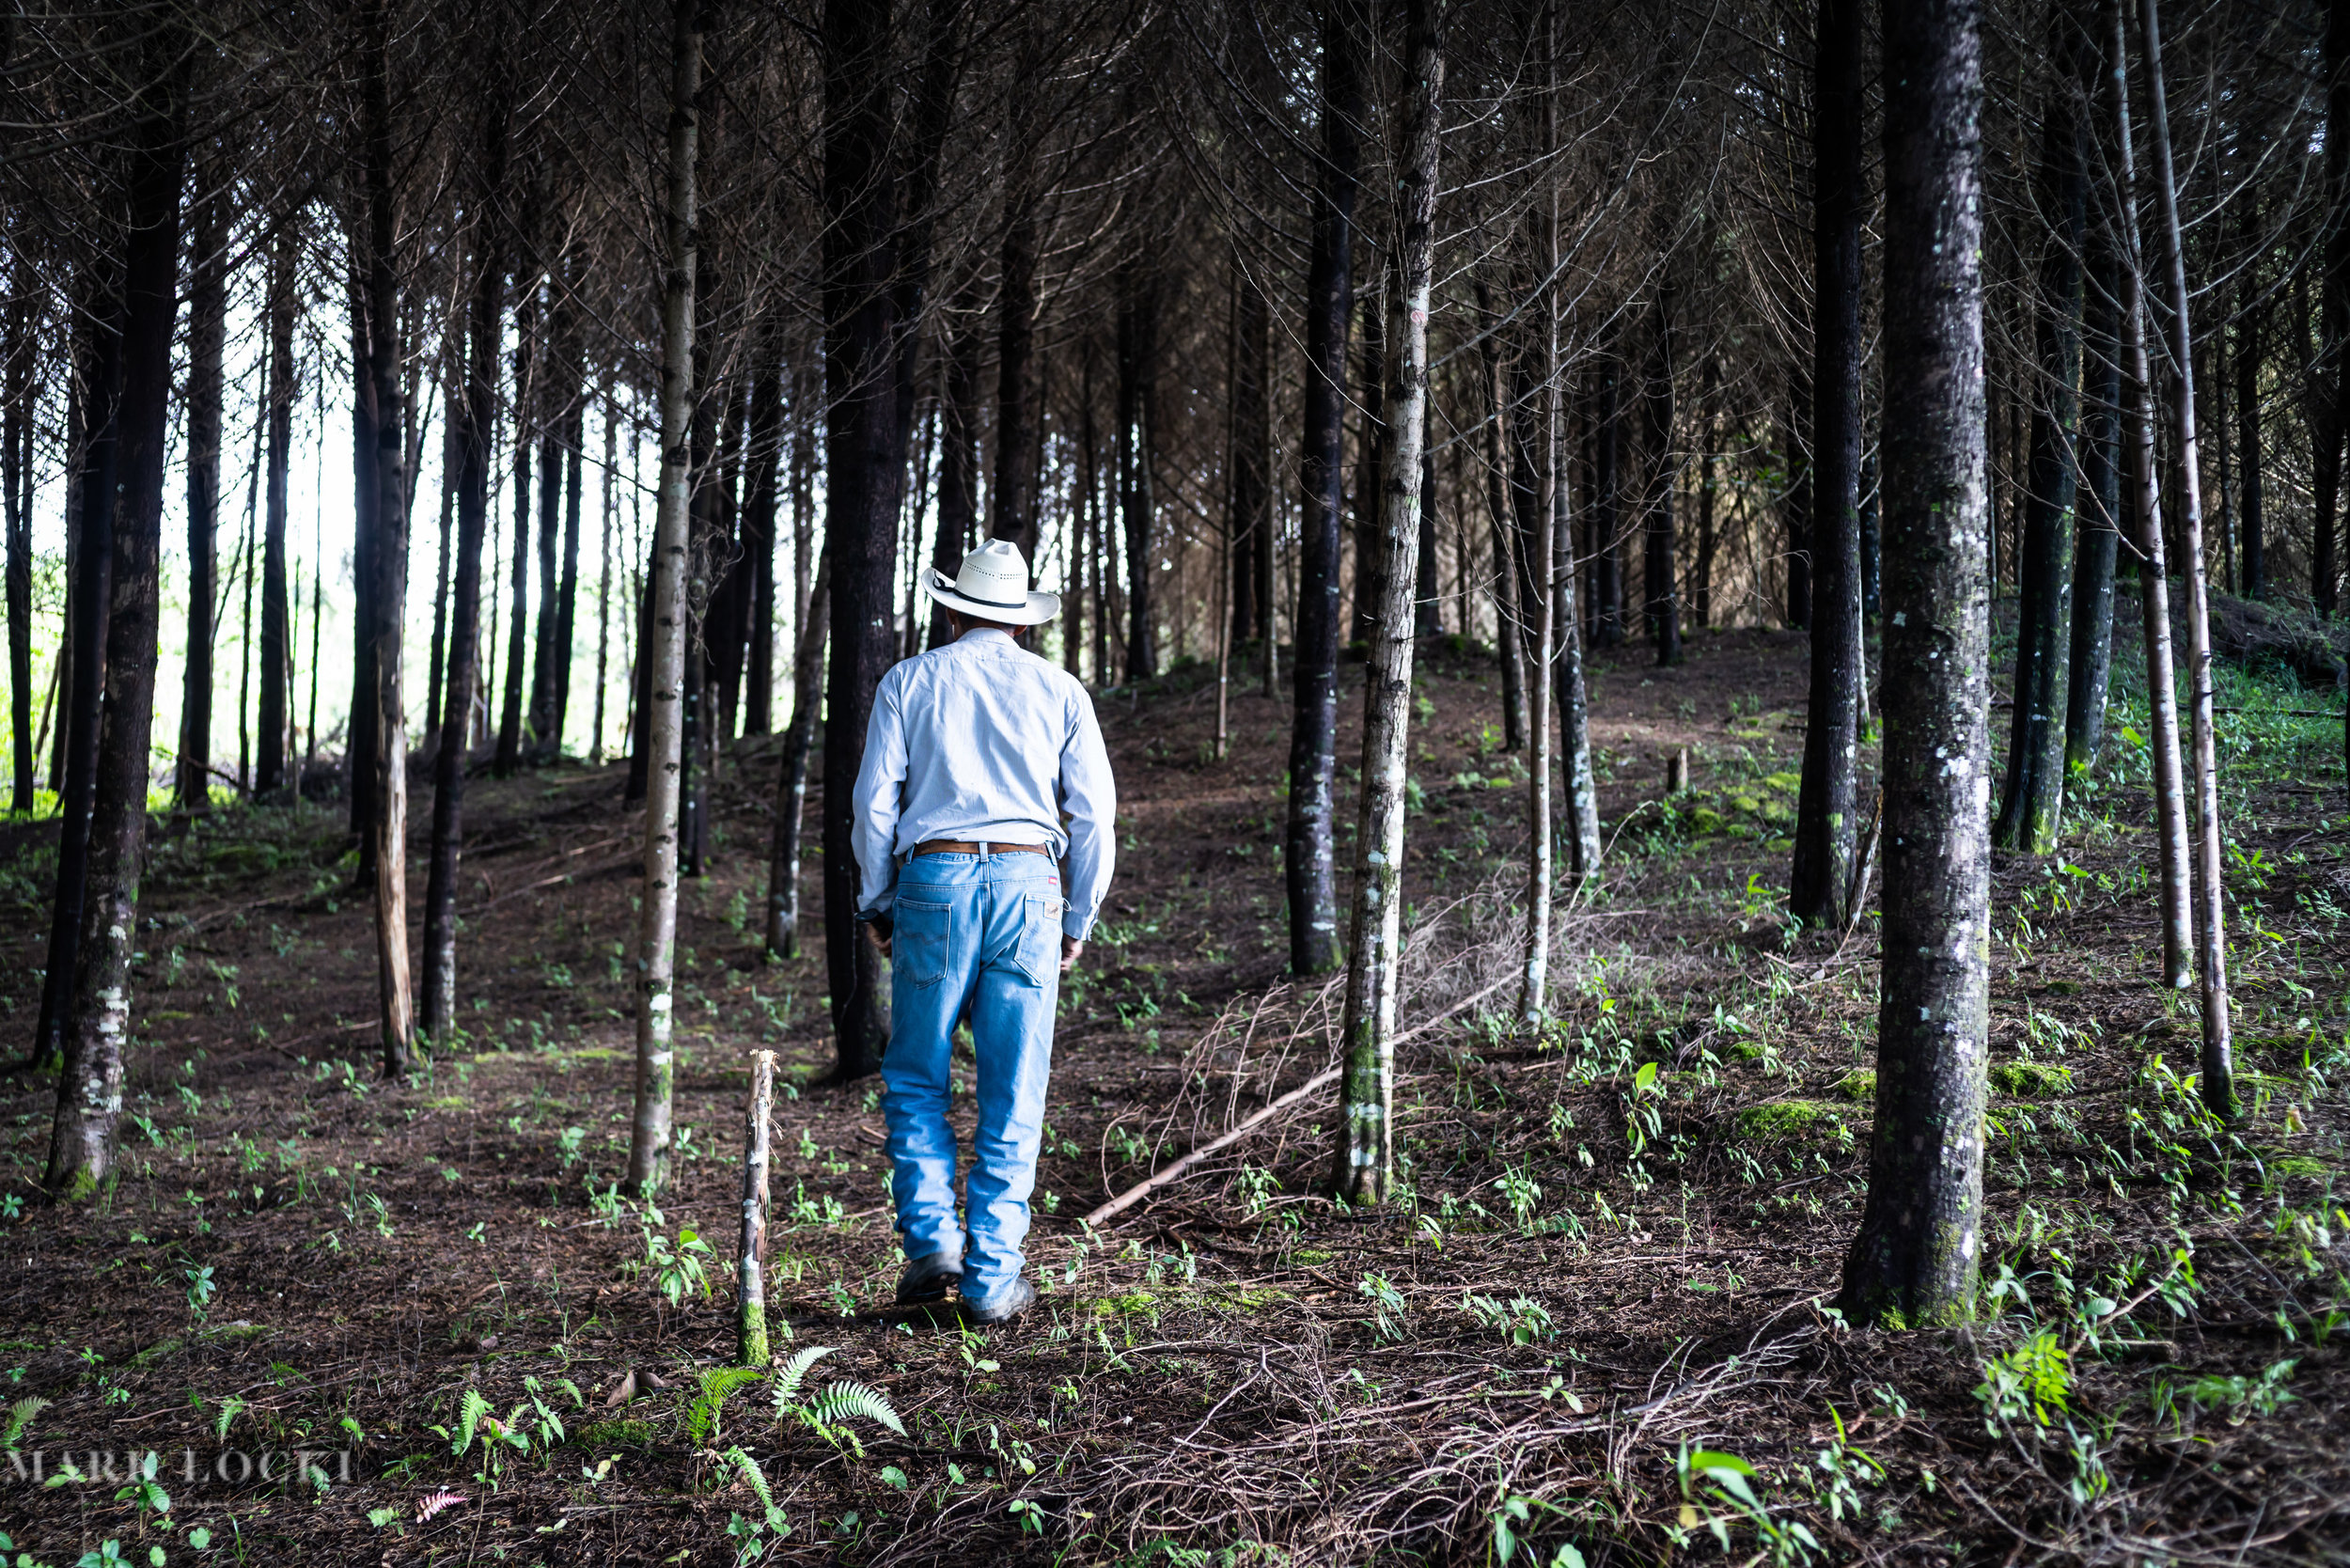 A man walks through a forest outside of Tziscao, Chiapas, Mexico